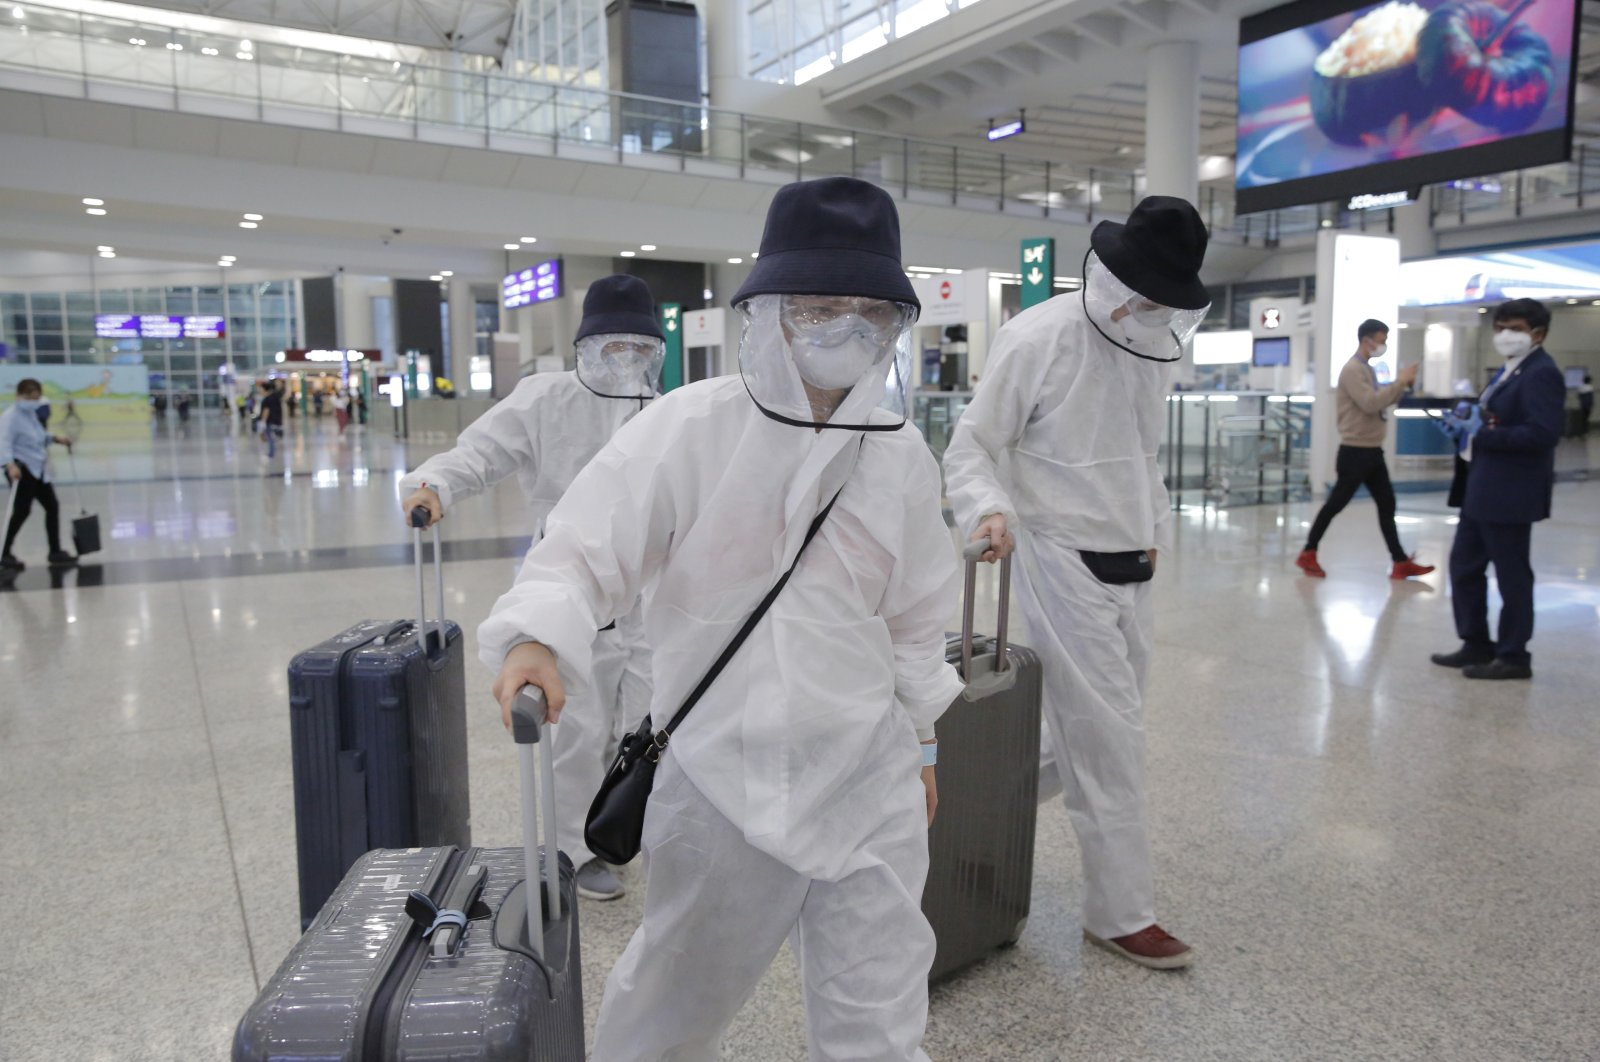 Passengers wear suits and face masks to protect against the coronavirus as they arrive at the Hong Kong airport, Monday, March 23, 2020. (AP Photo)